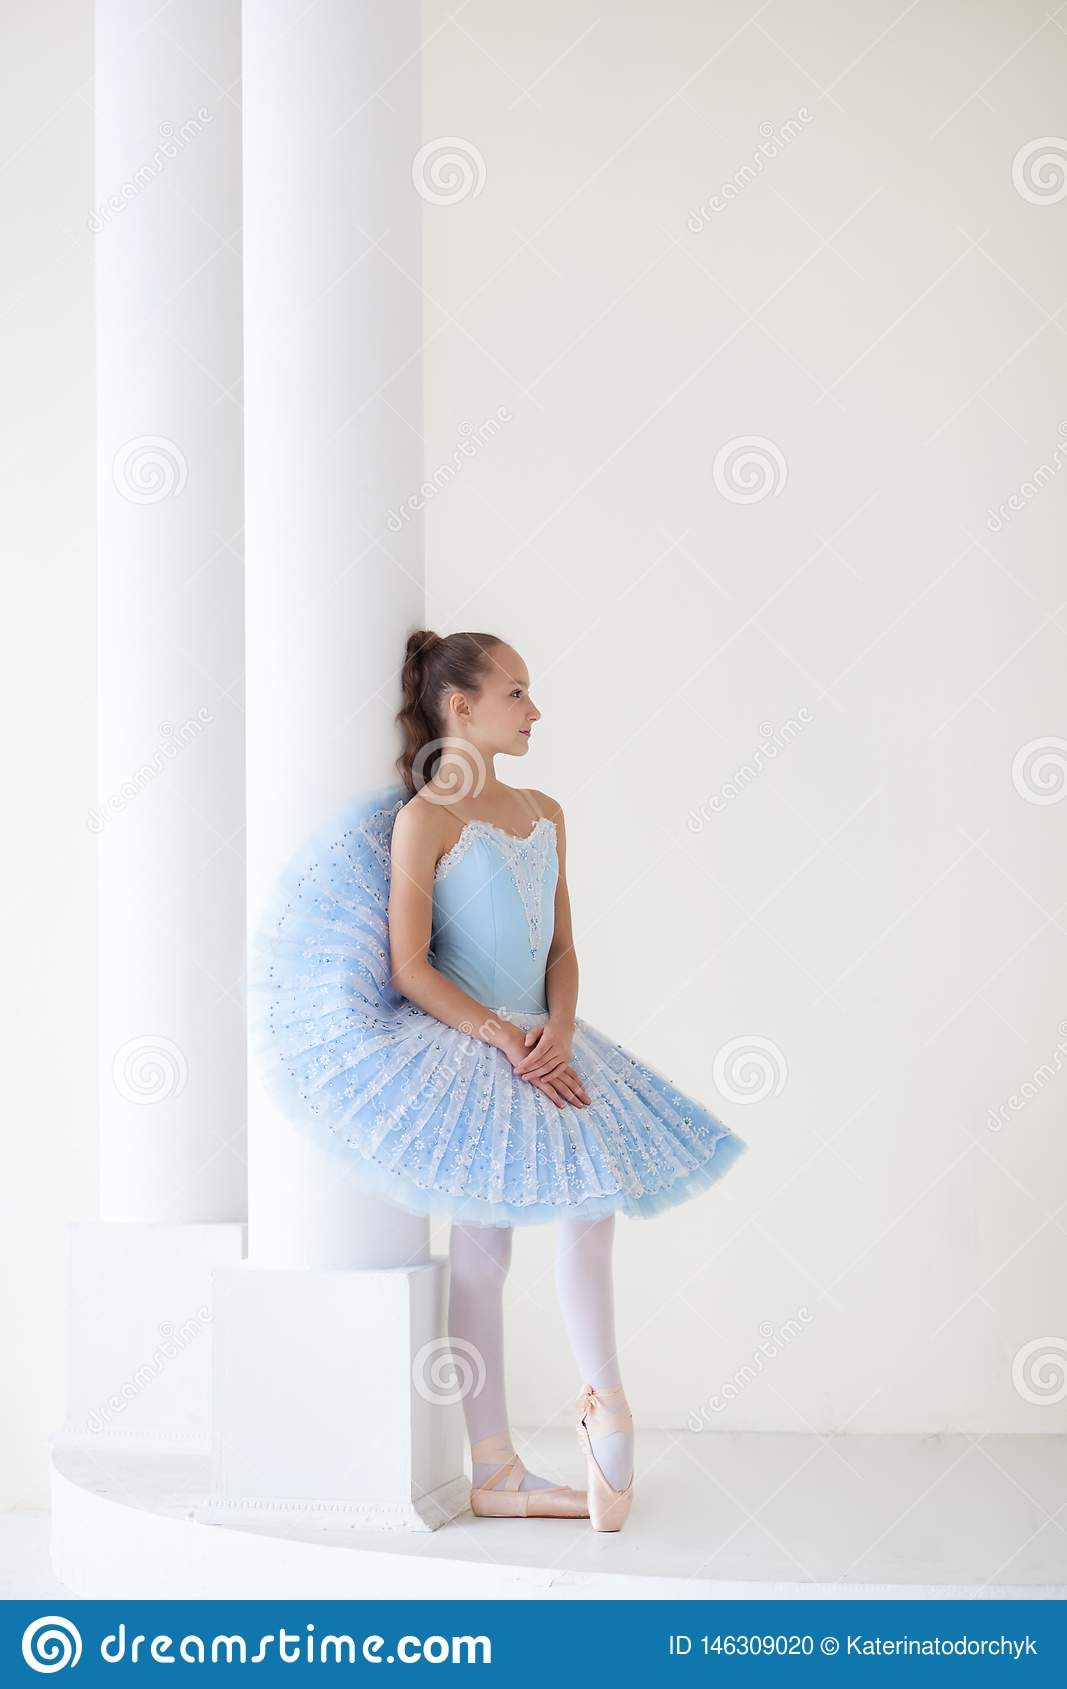 A cute ballerina in ballet costume and in pointe is dancing in a white studio. Girl in the dance class. The girl is studying balle